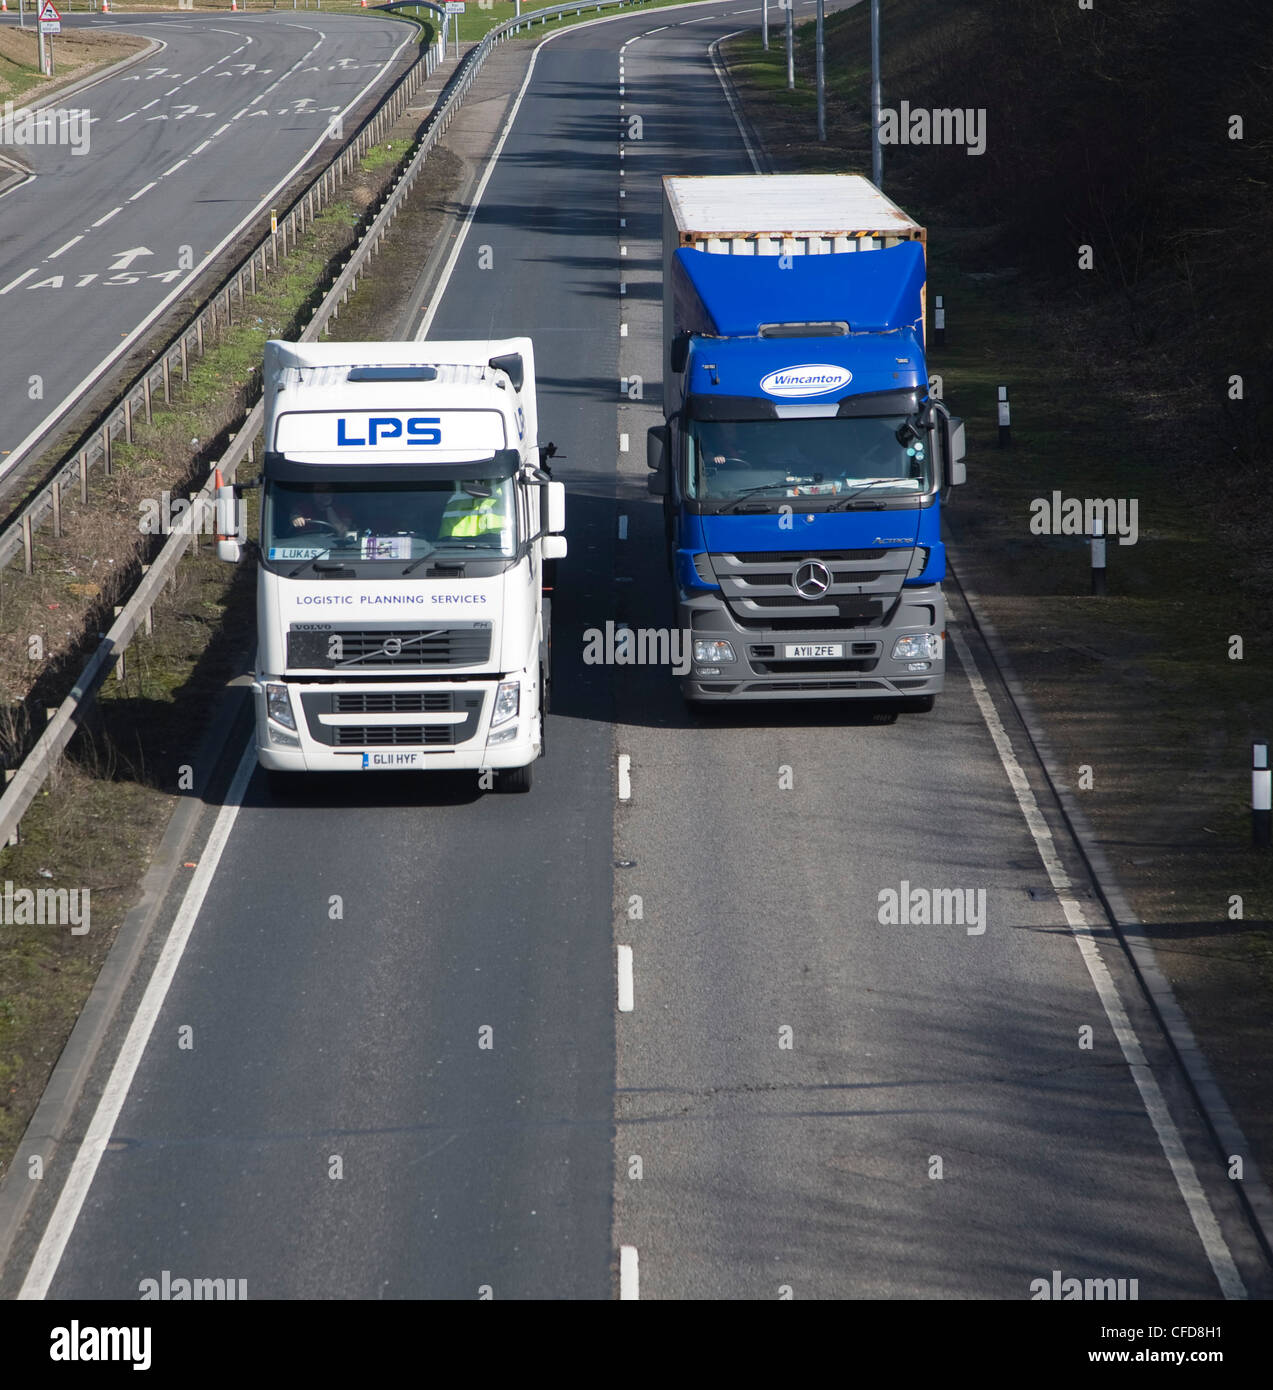 Two HGV lorries one over-taking the other on dual carriageway - Stock Image